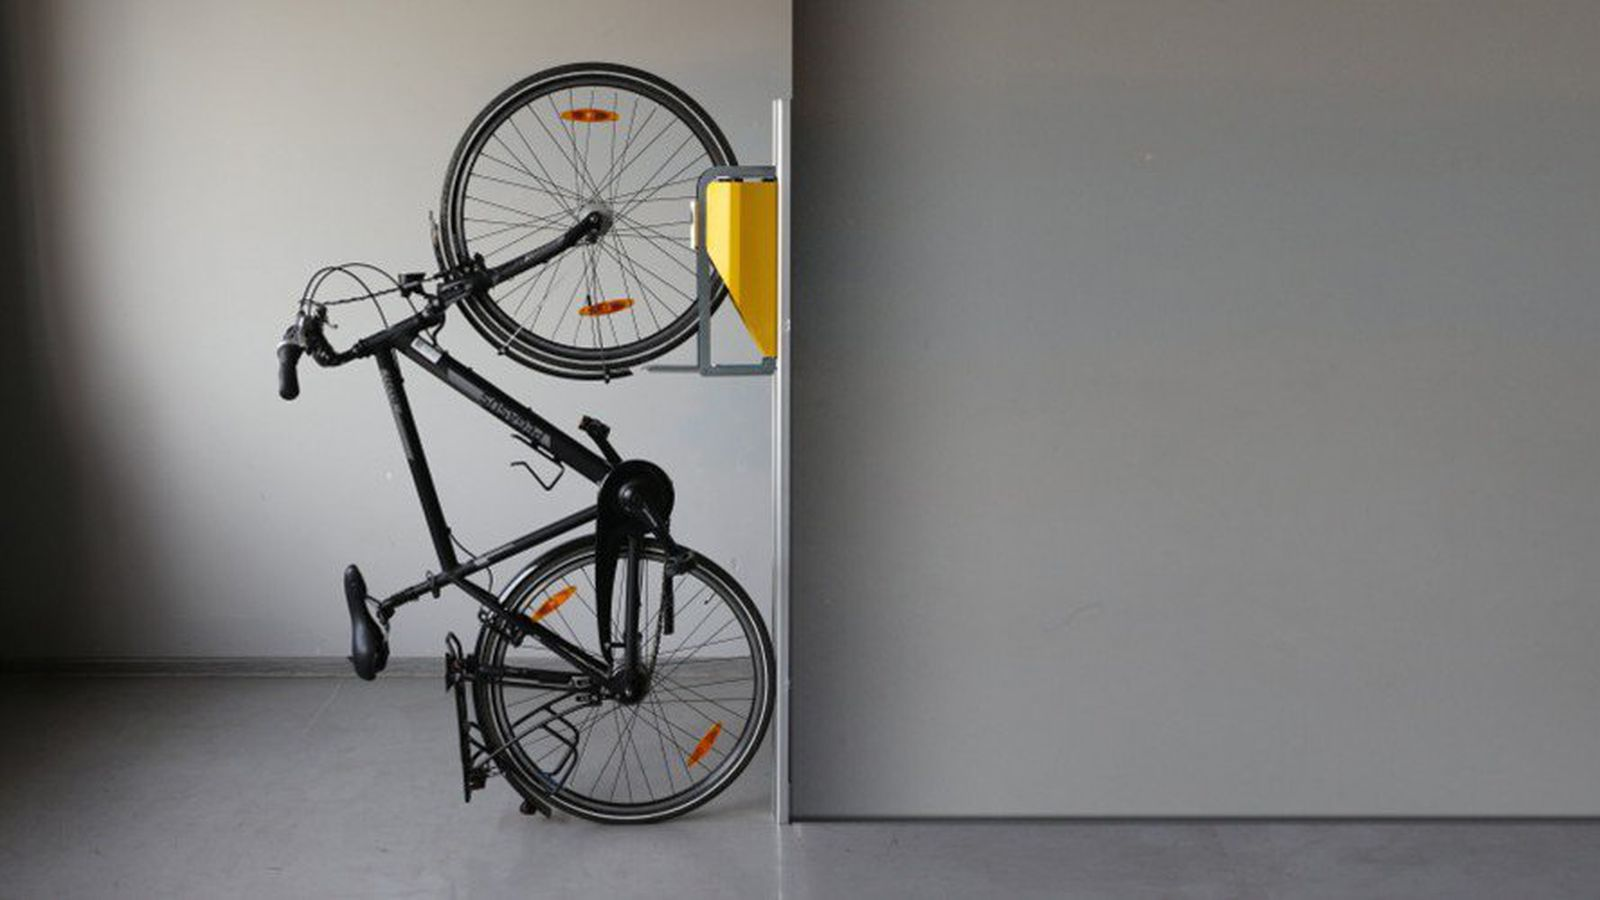 Philadelphia design home 2016 new bike rack offers small space storage solution curbed college - Bike storage small space design ...